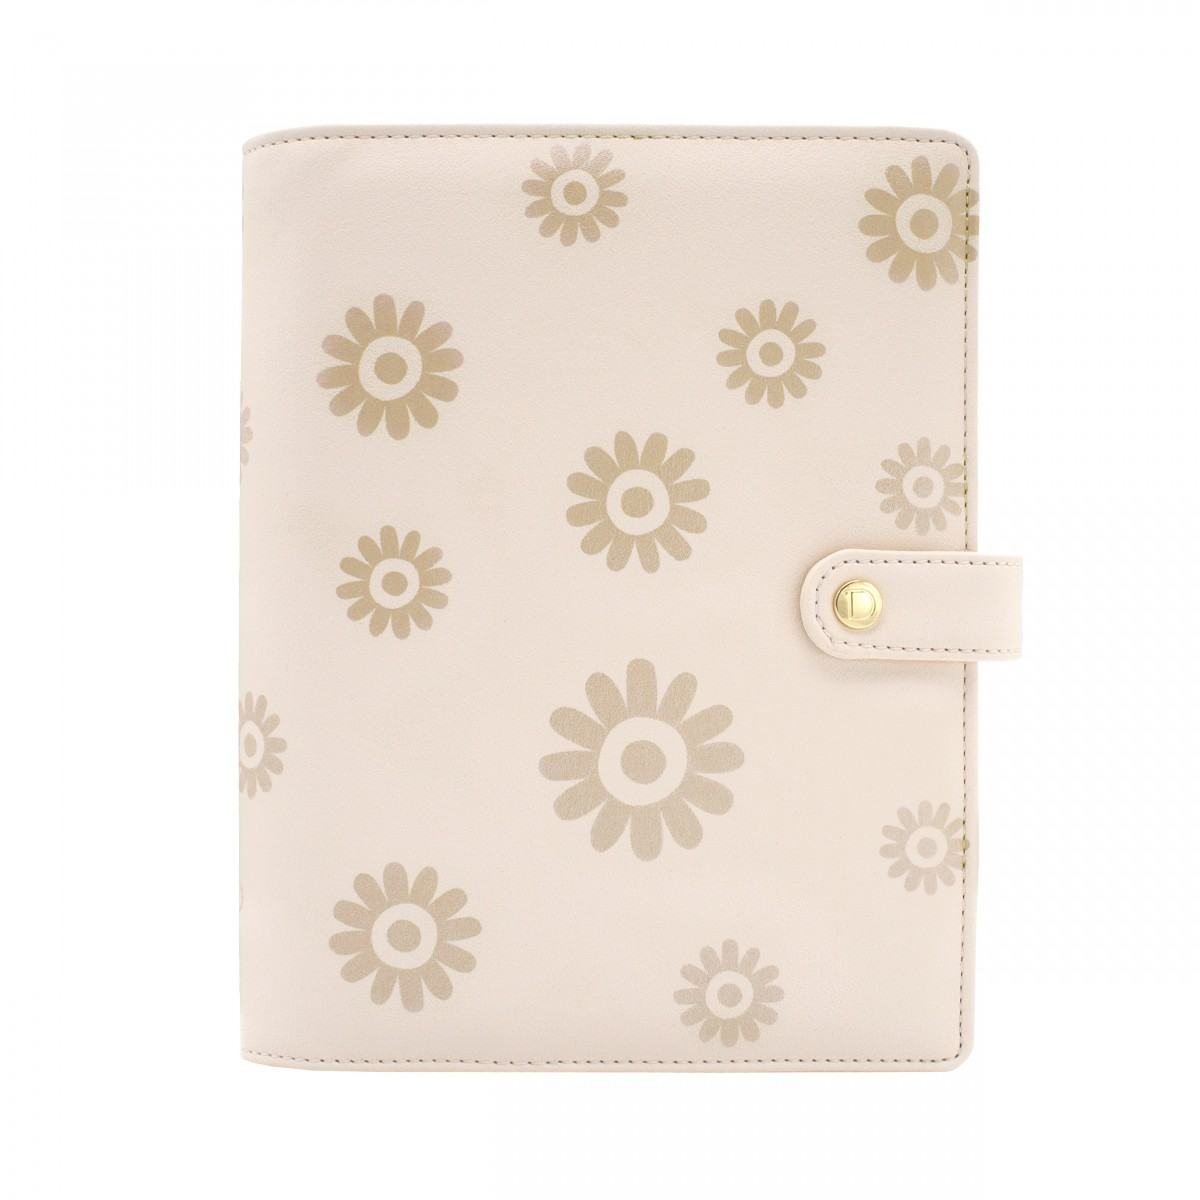 DISCAGENDA BLOSSOMS GOLD COVER A5 SNAP CLOSURE